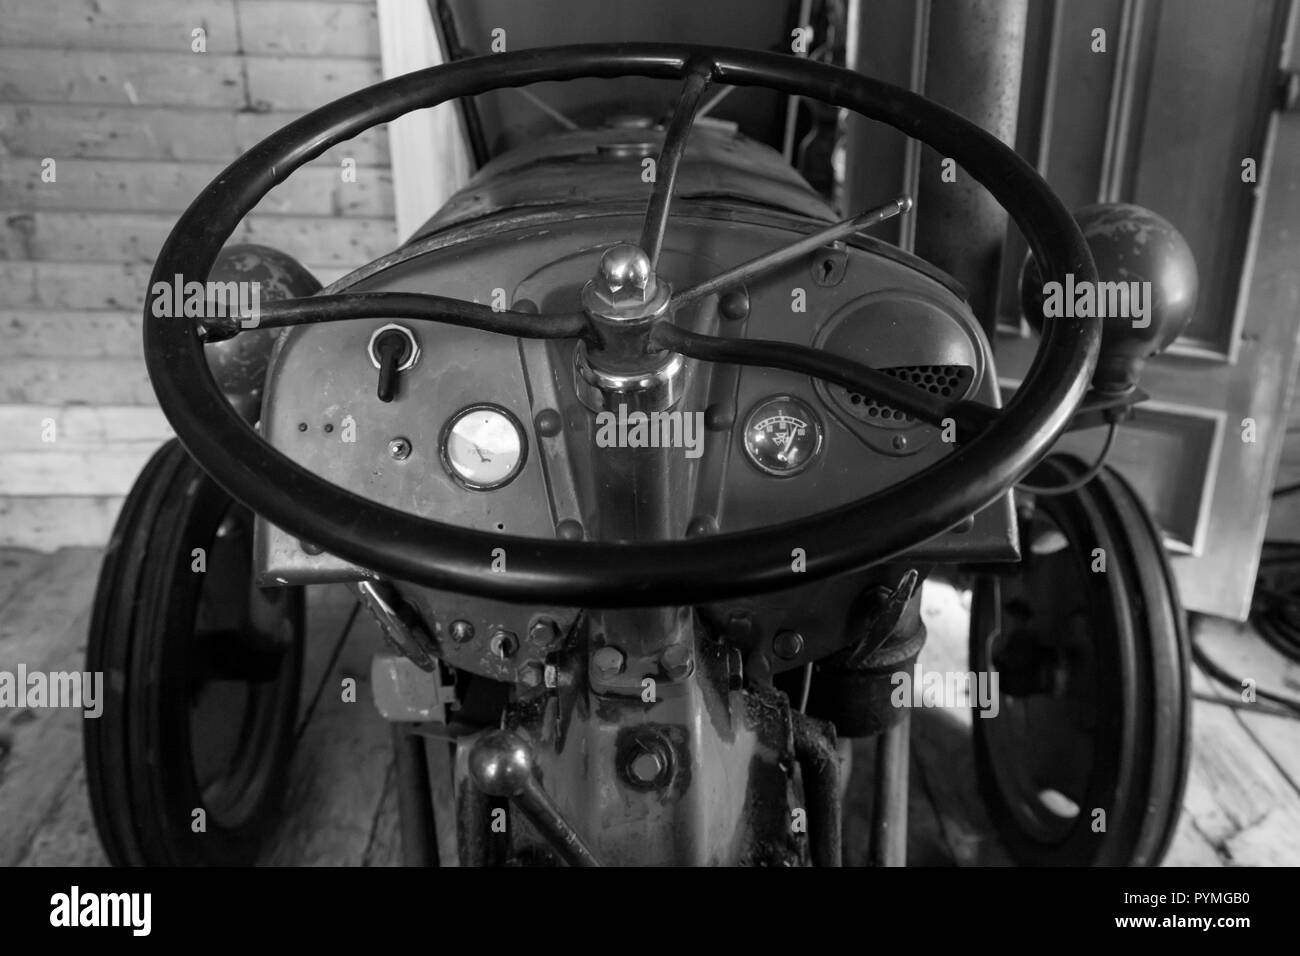 Tractor Black And White Stock Photos Images Alamy Old Electrical Wiring Antique Farm In An Swedish Northern Sweden Image